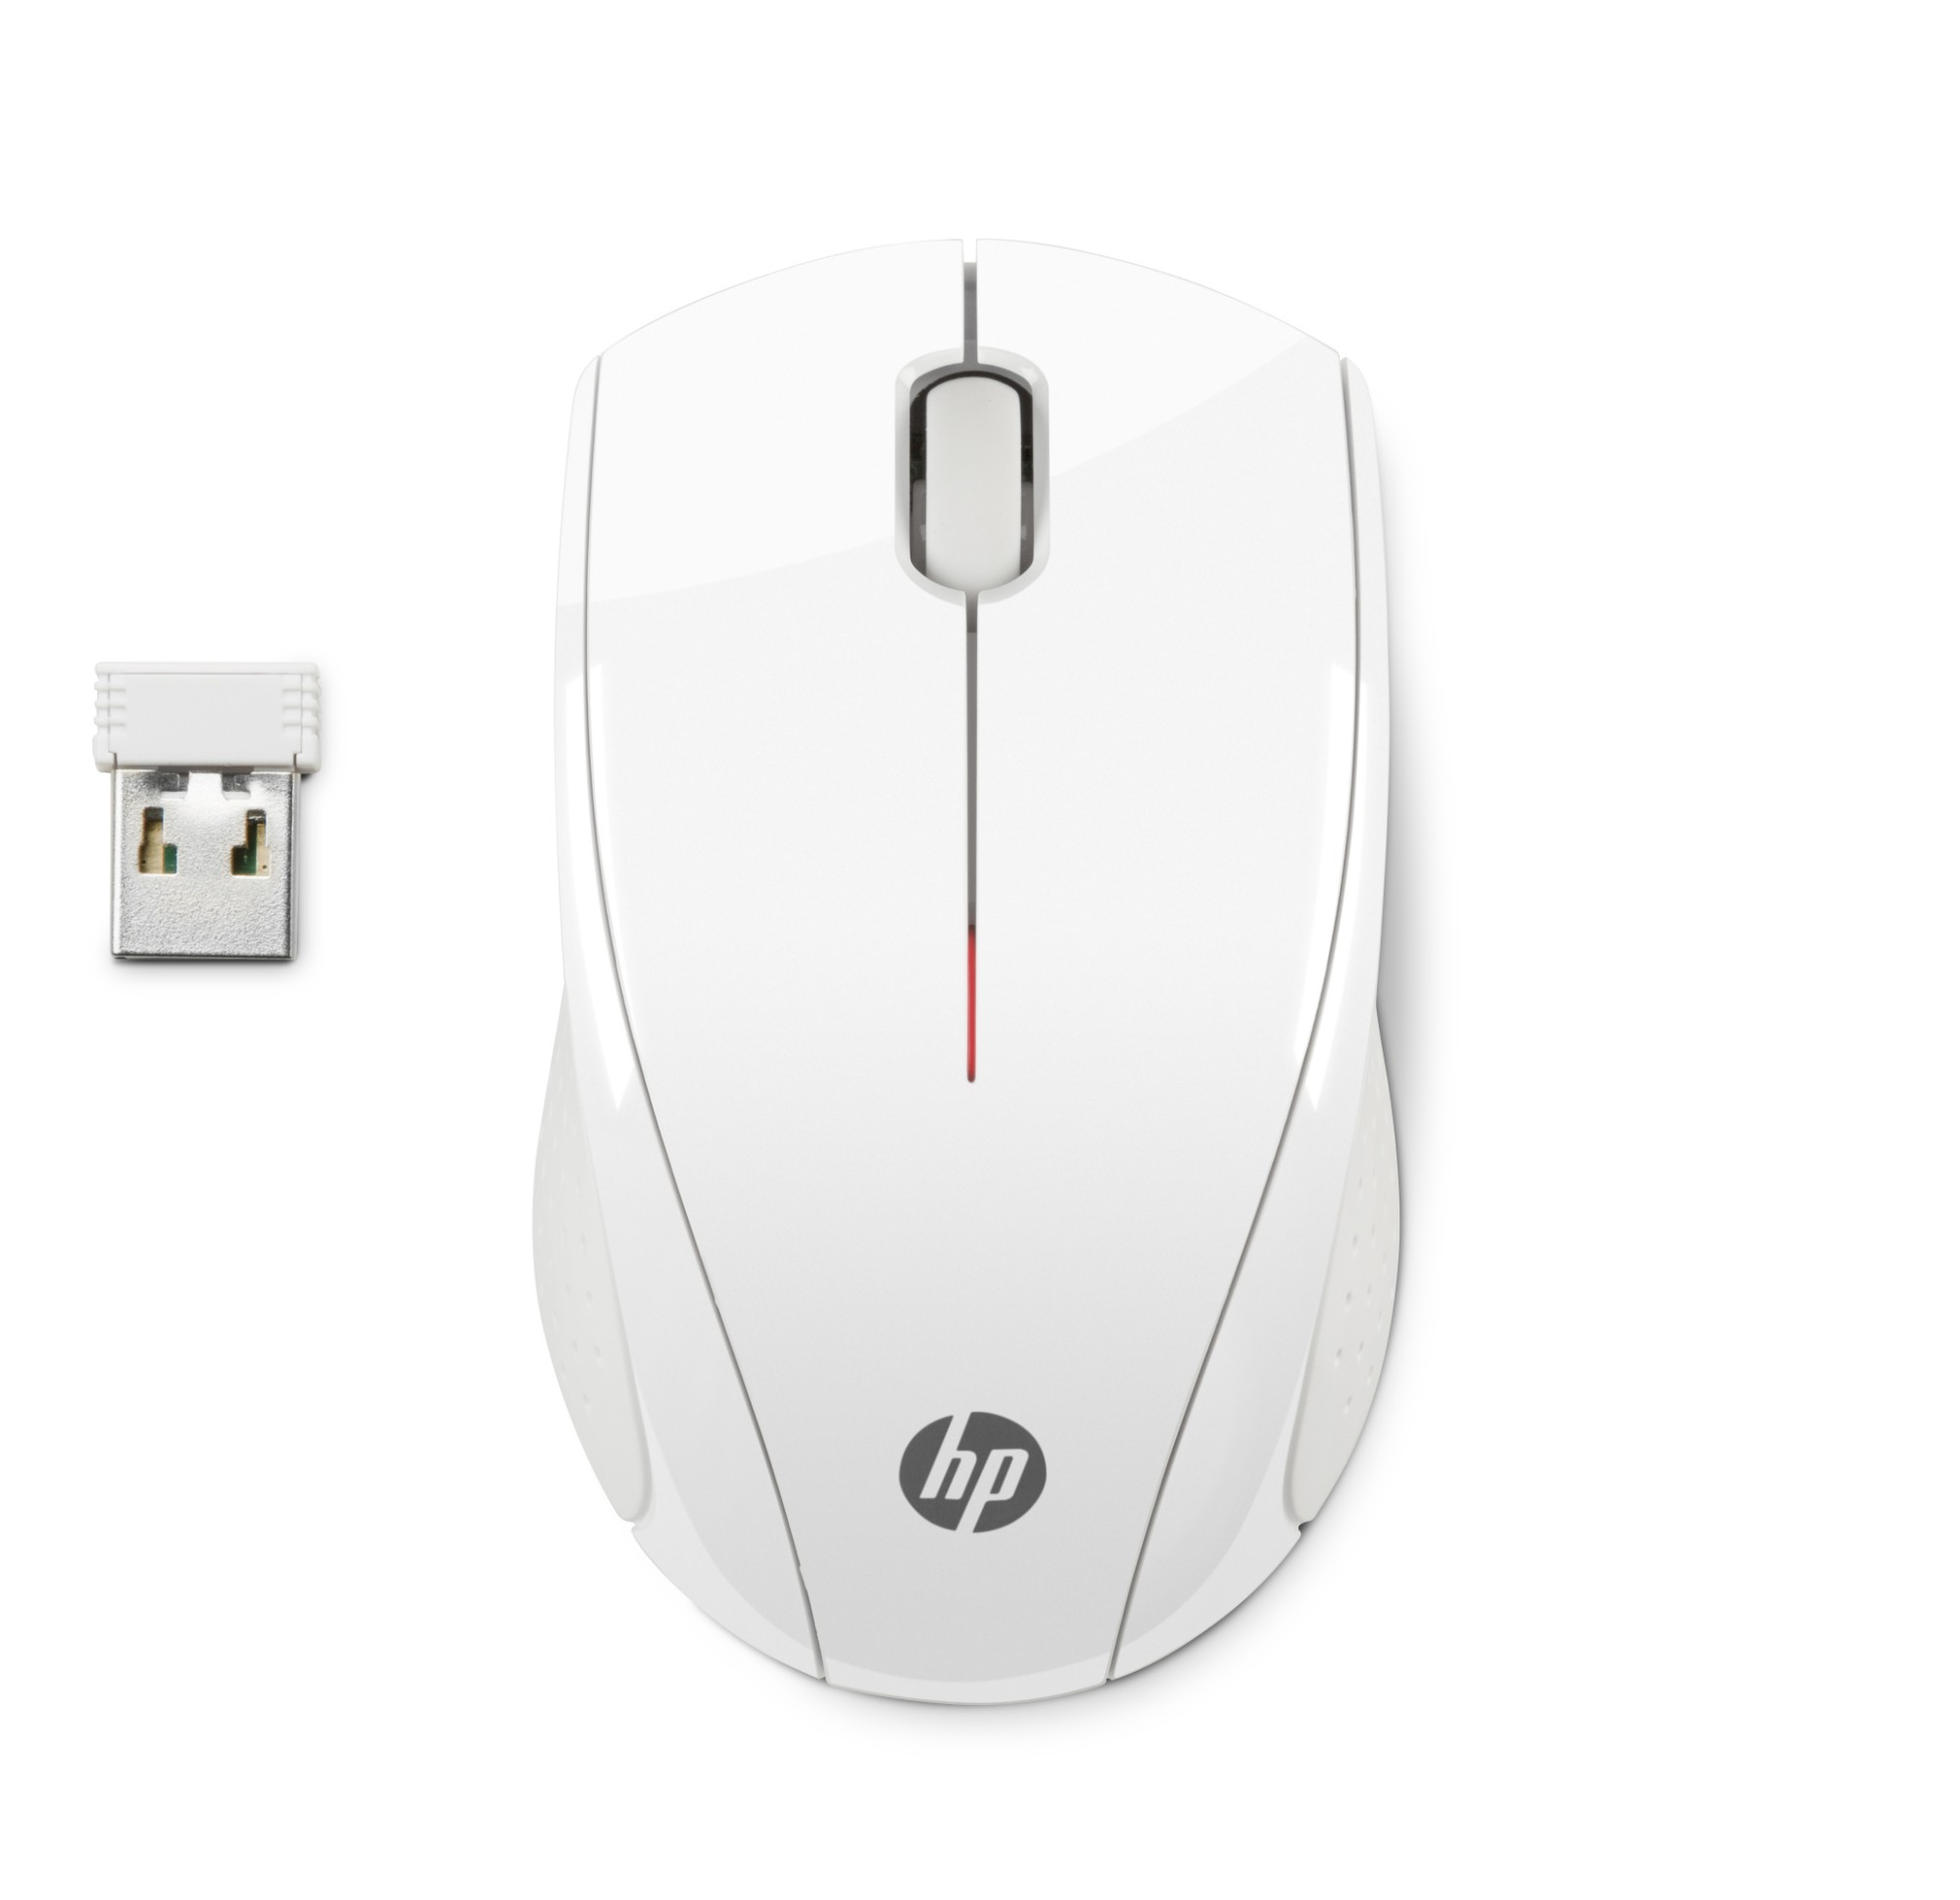 HP X3000 mice RF Wireless Optical 1200 DPI Ambidextrous